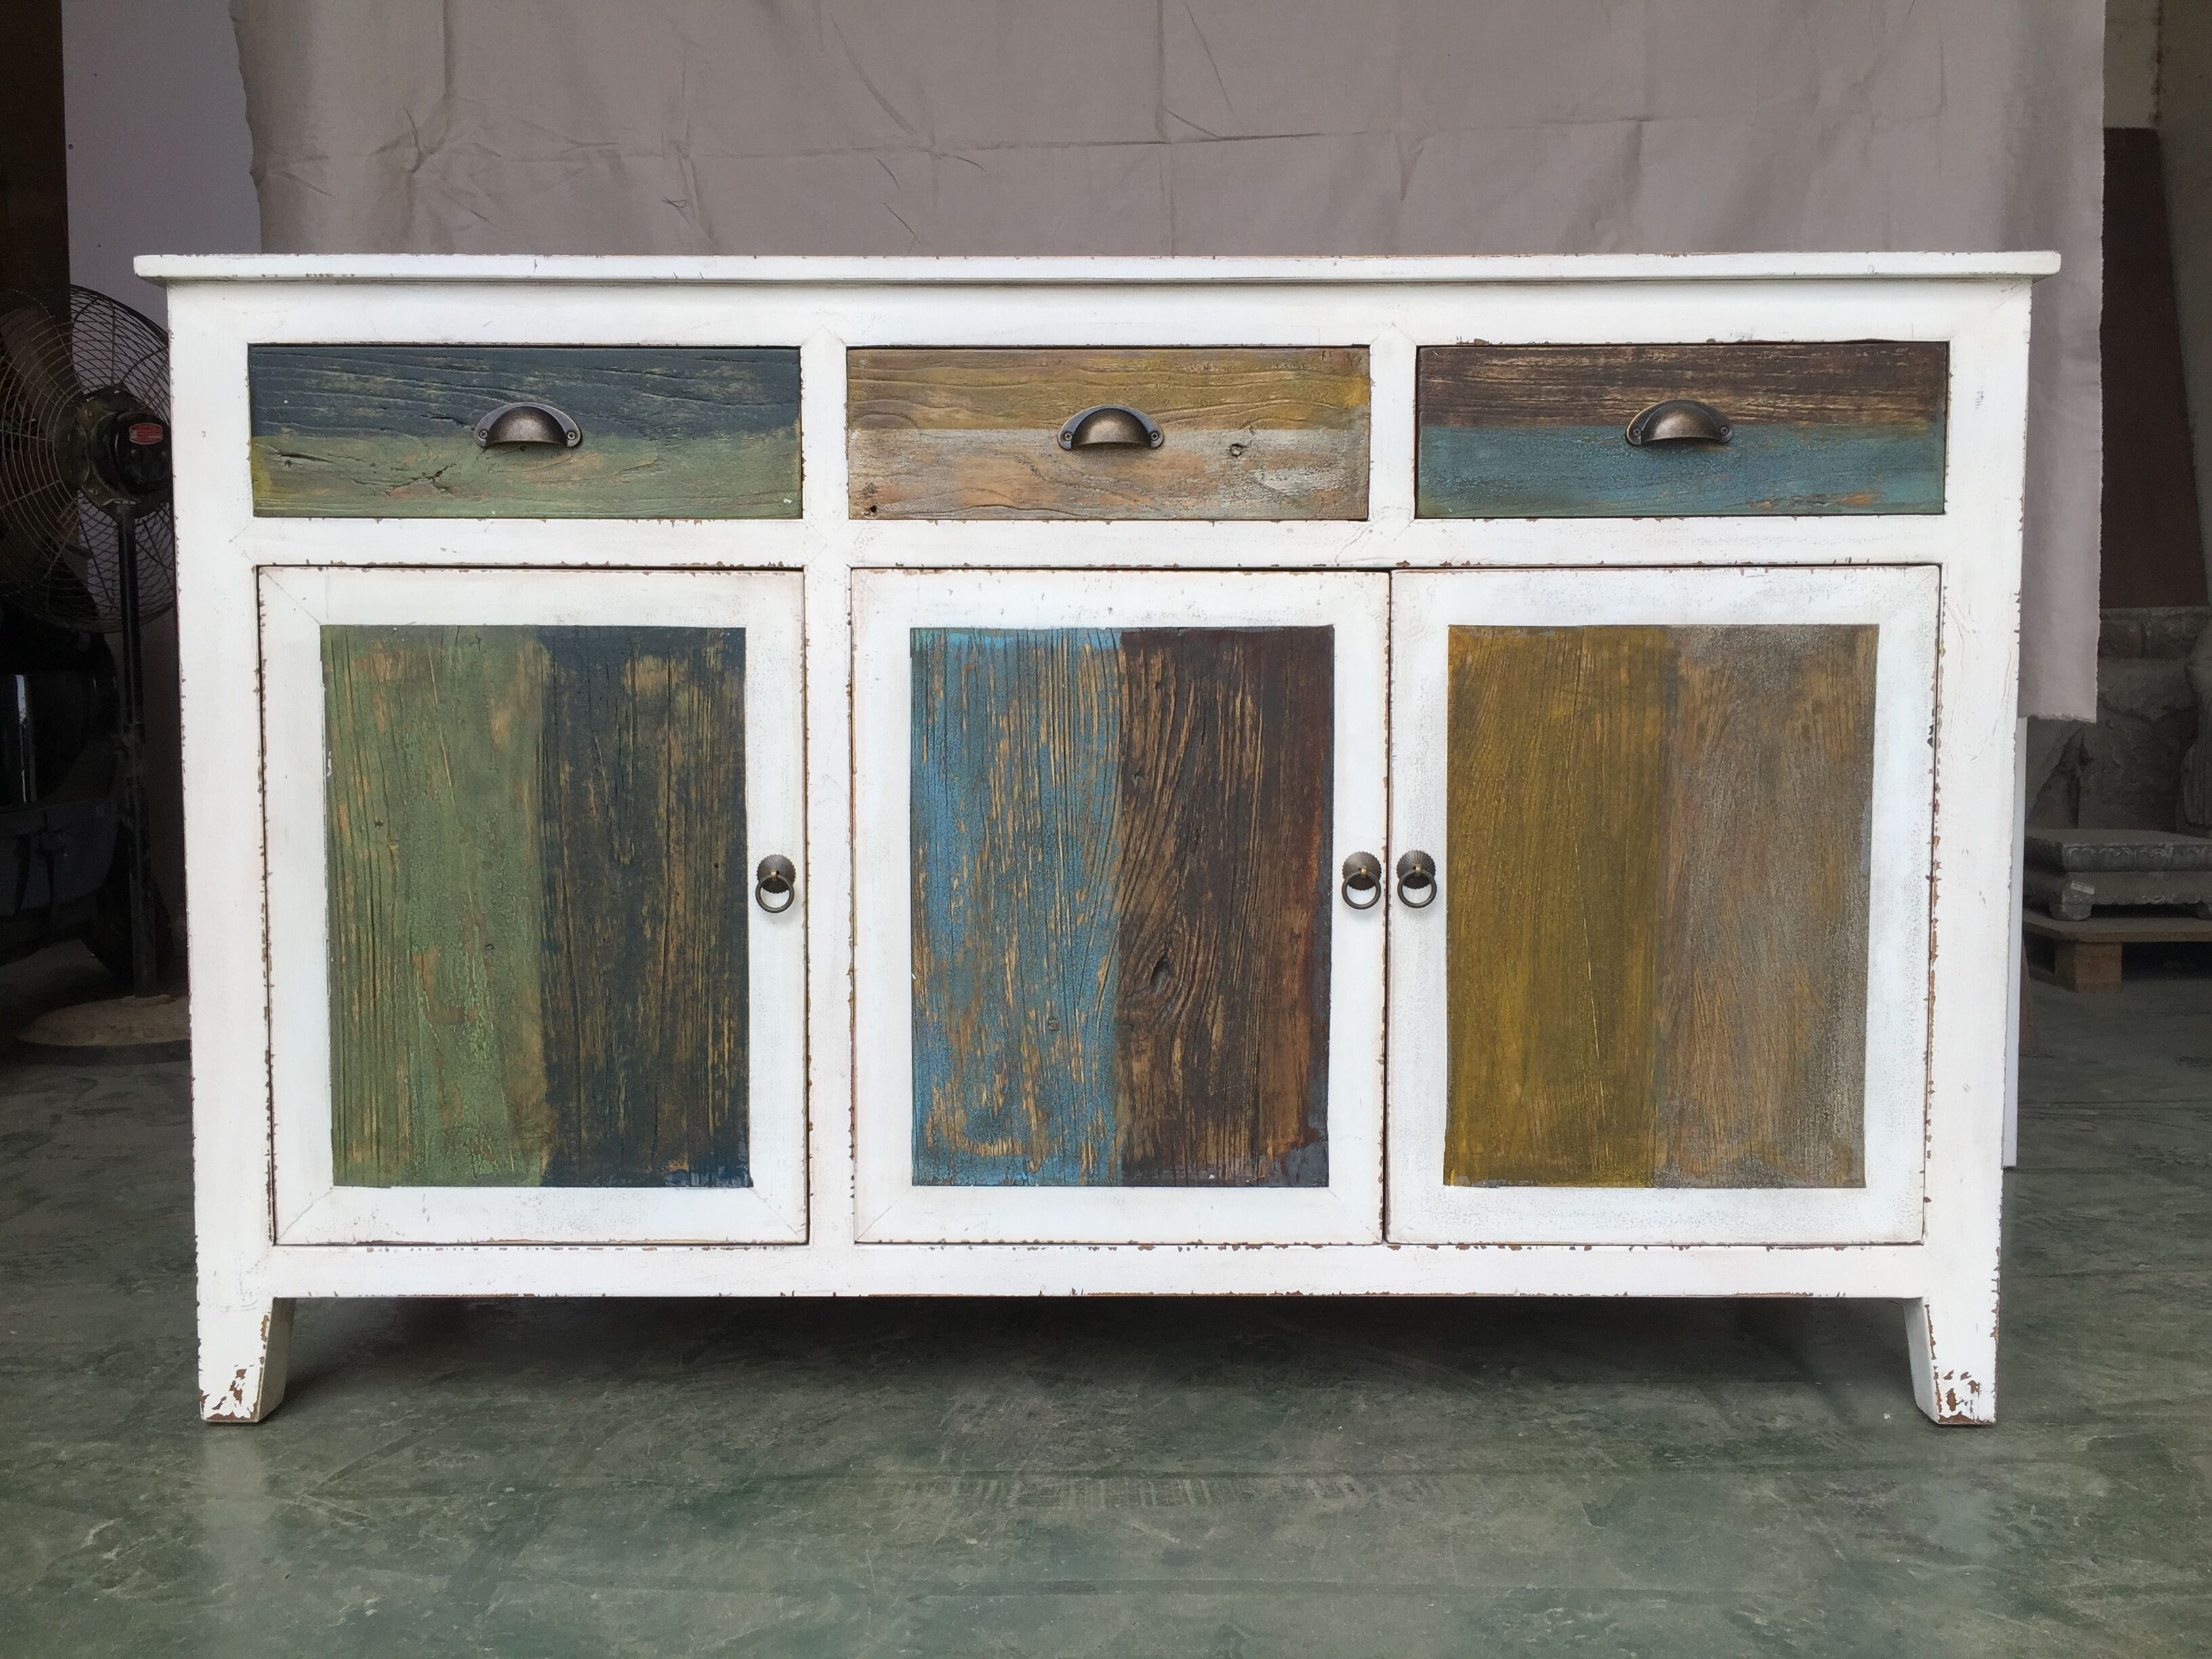 White buffet table furniture - Rustic Distressed White Furniture With Multi Color Drawers Doors Sideboard Buffet Storage Cabinet Durable